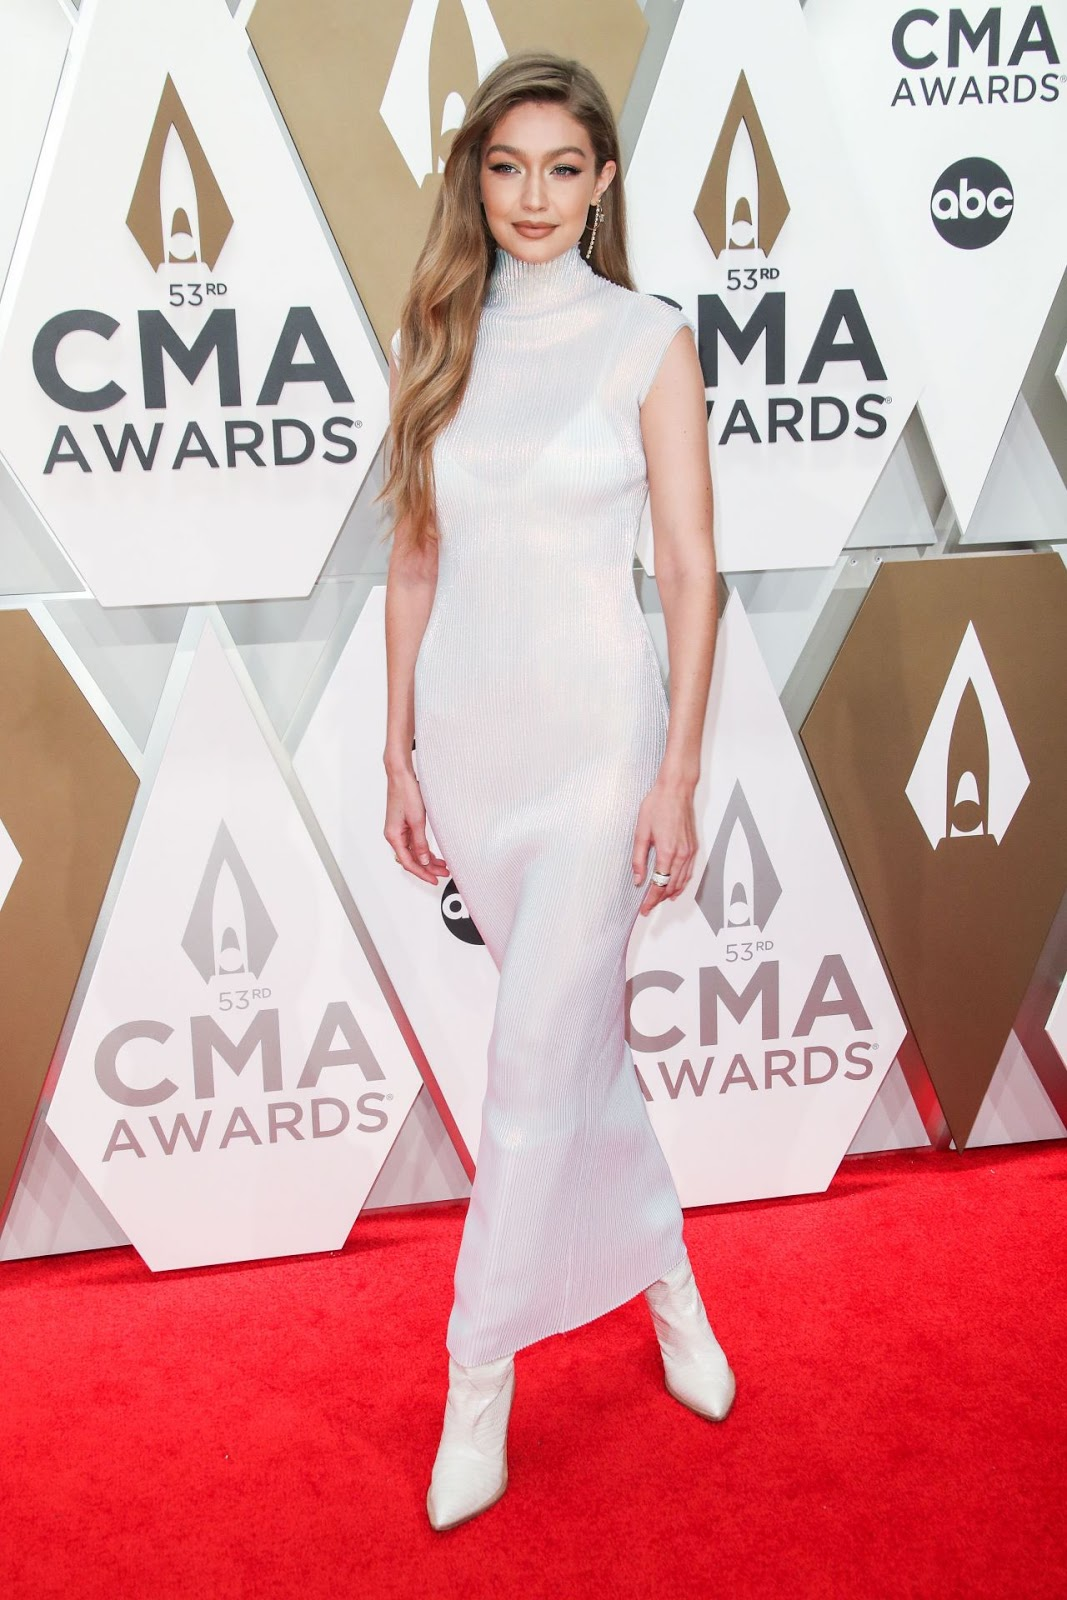 Gigi Hadid – 53rd Annual CMA Awards at Bridgestone Arena in Nashville